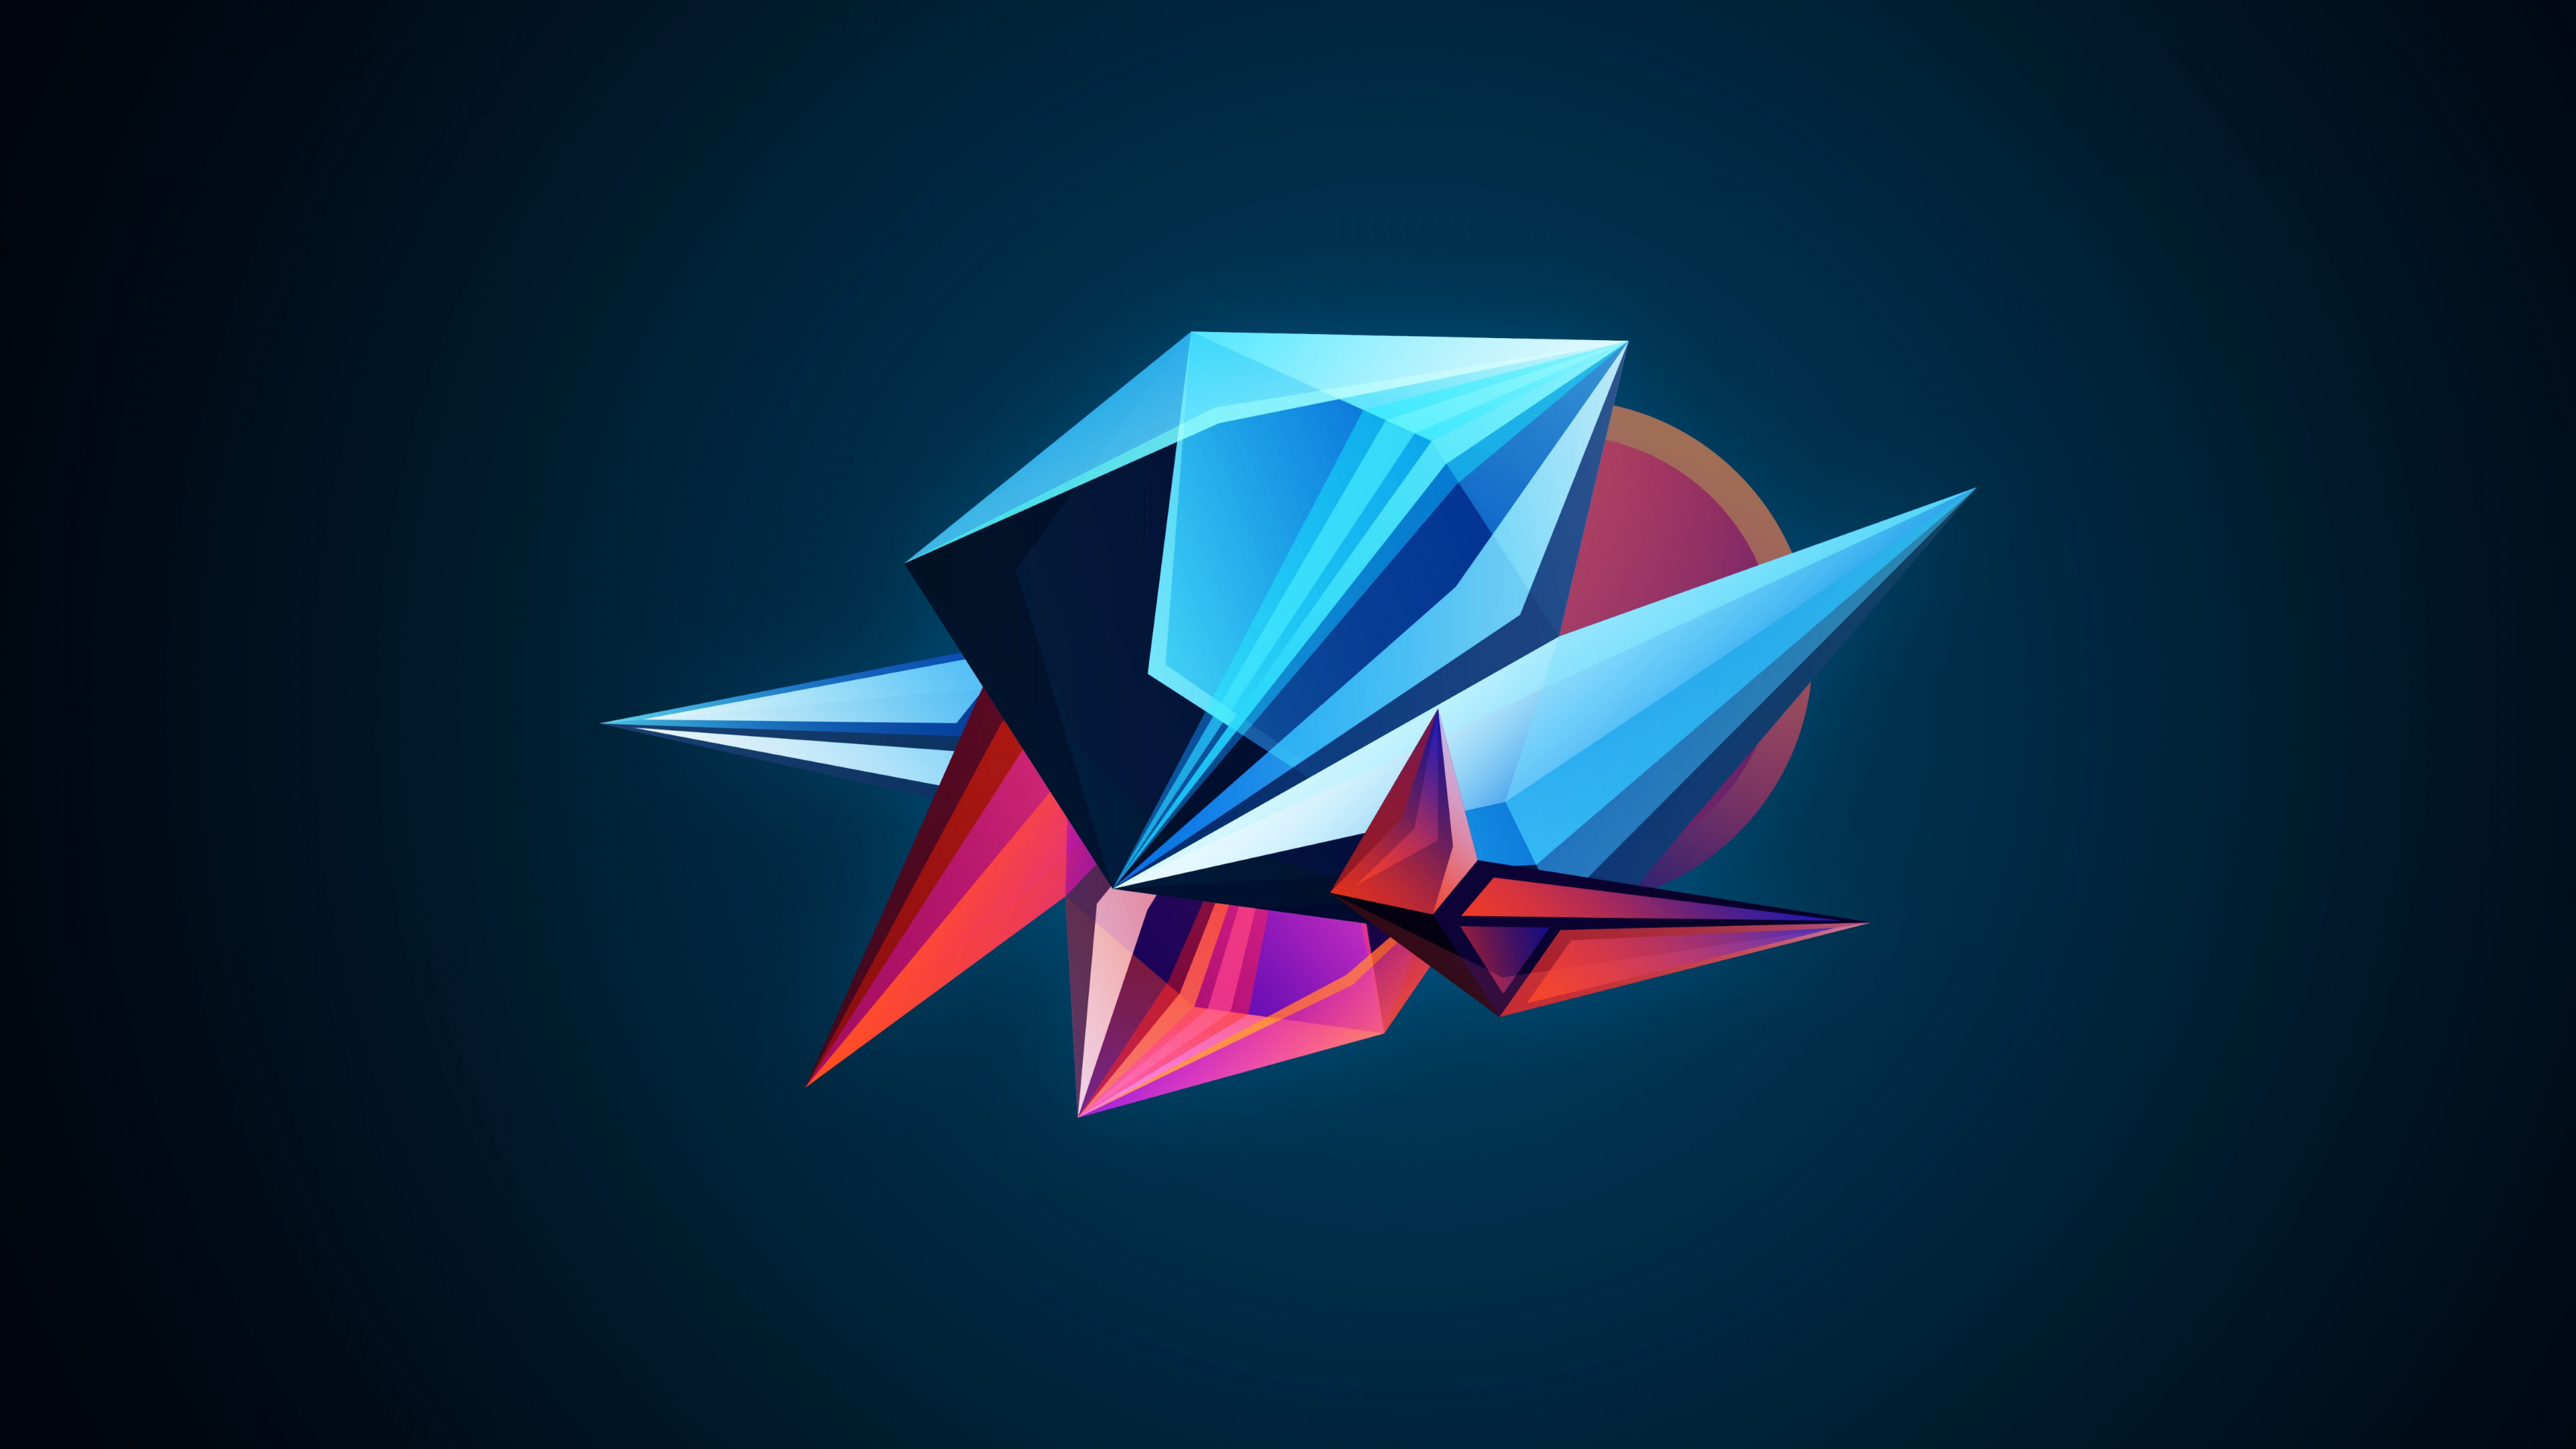 Abstract 3D shapes wallpaper 3840x2160